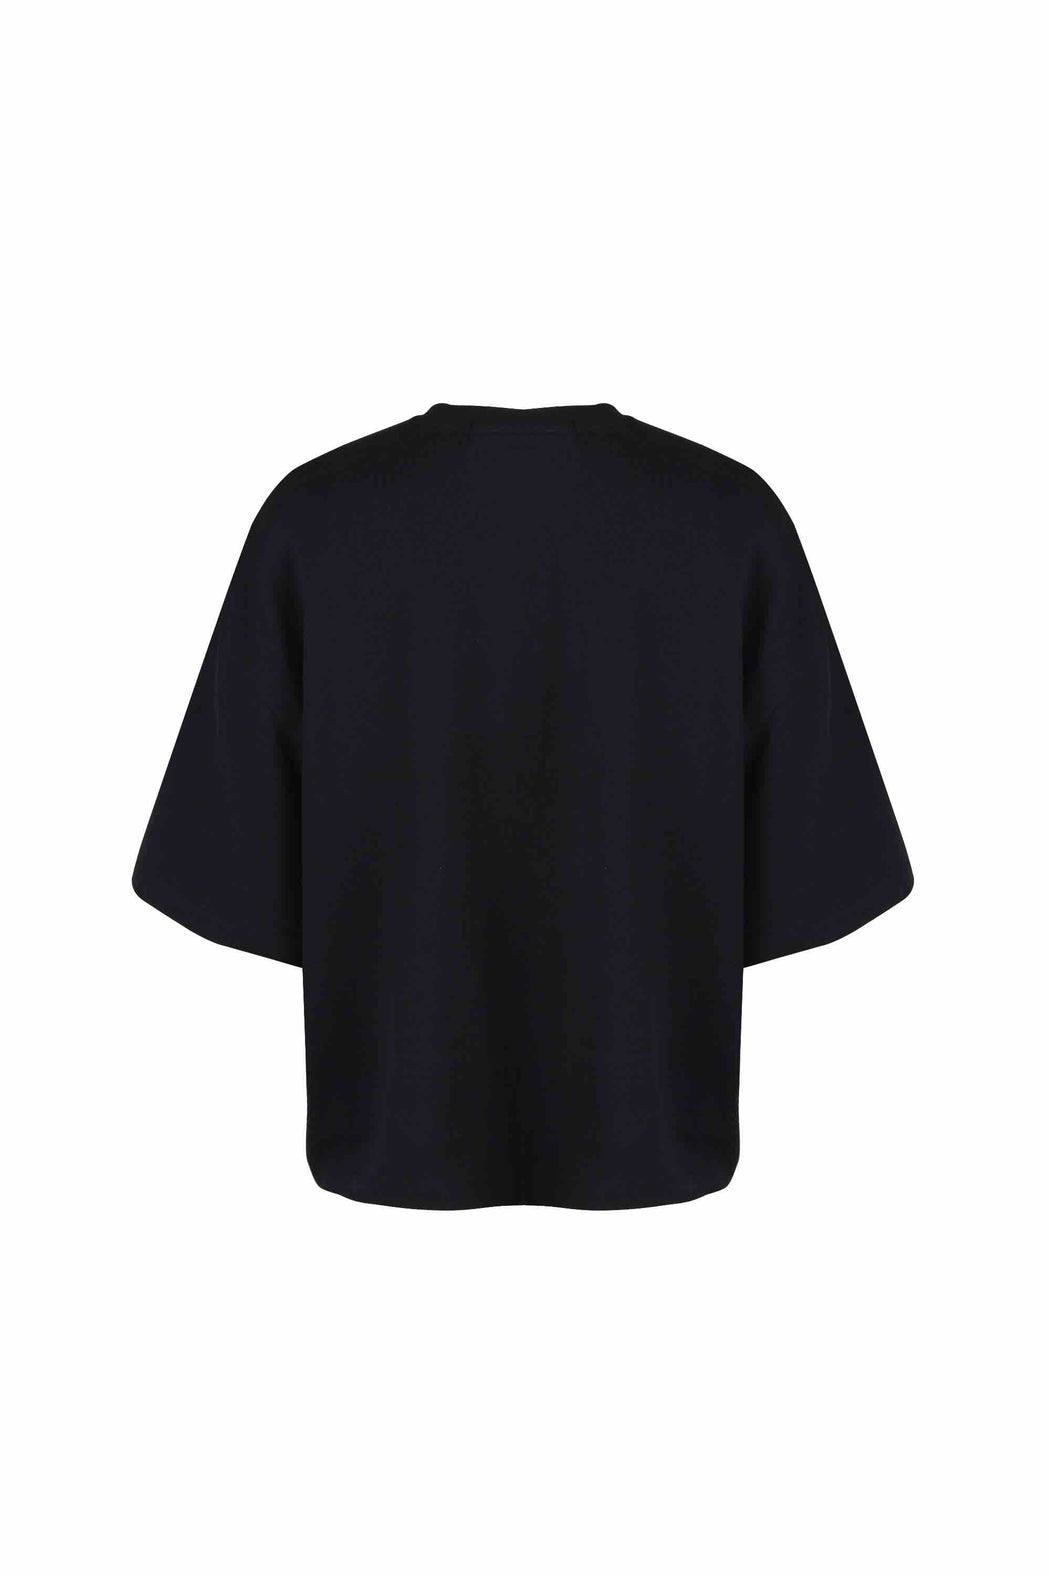 Back view of Women Bead Trim Pocket T-Shirt made with Organic Cotton in Black